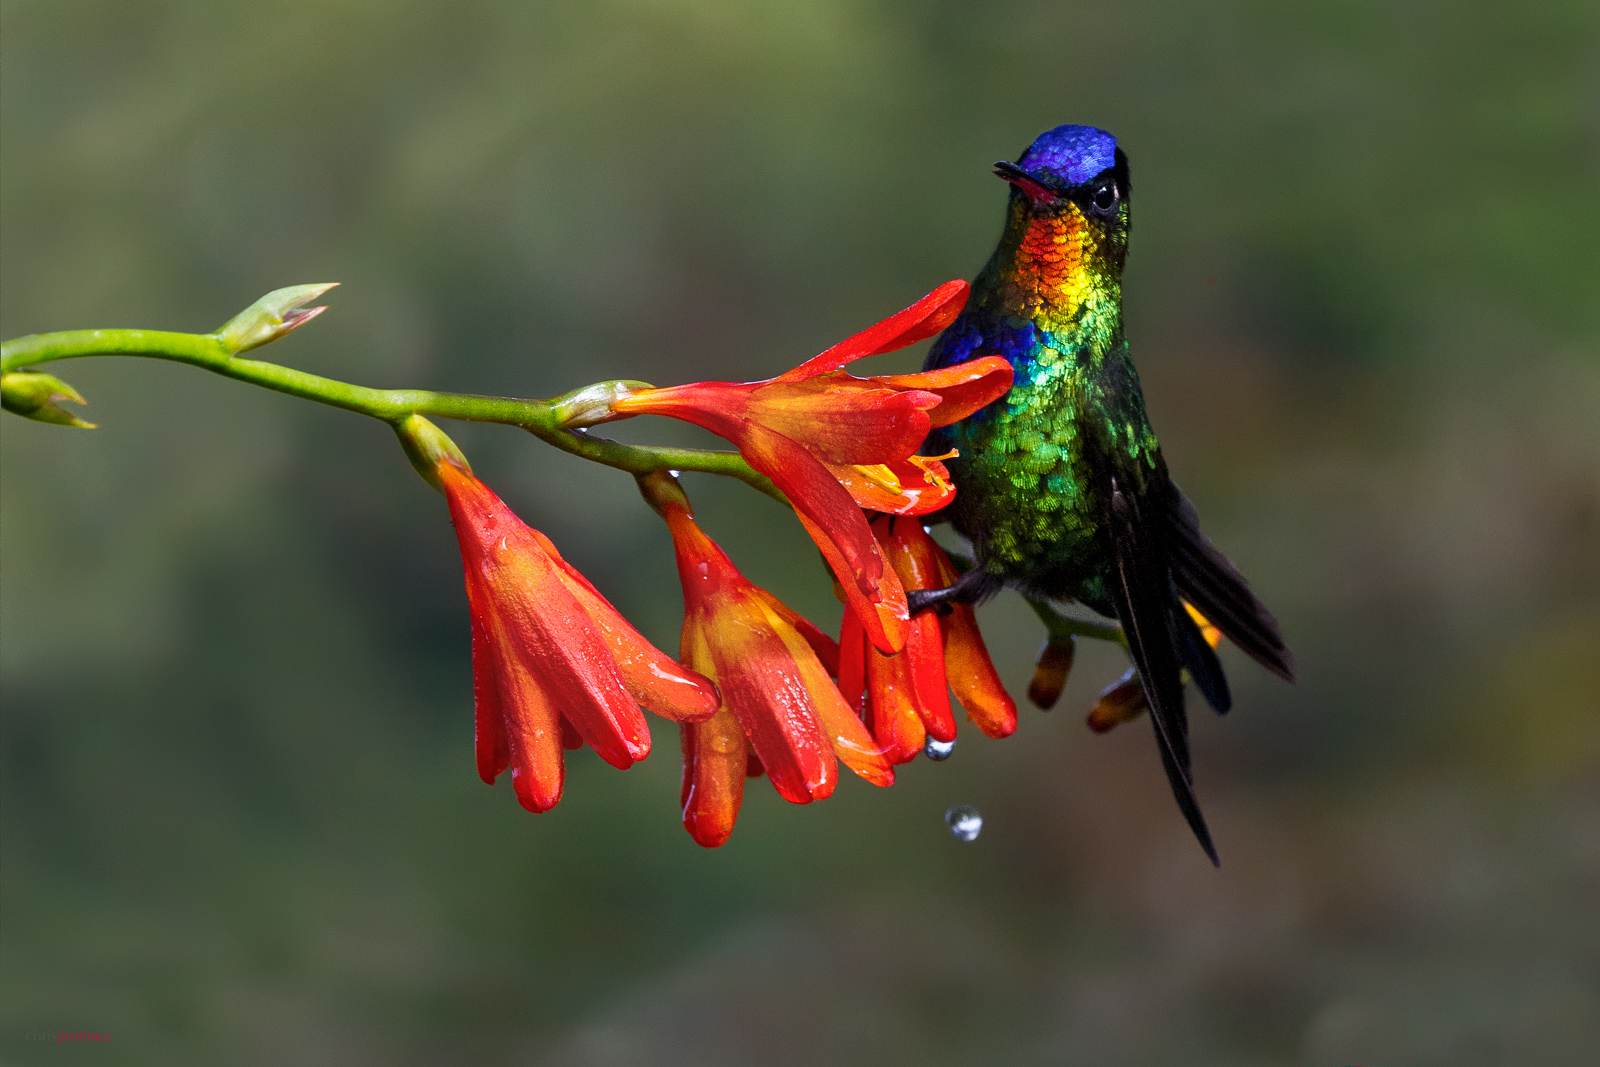 Fiery-throated Hummingbird Endemic from Costa Rica and Panama, Cerro de la Muerte, Costa Rica